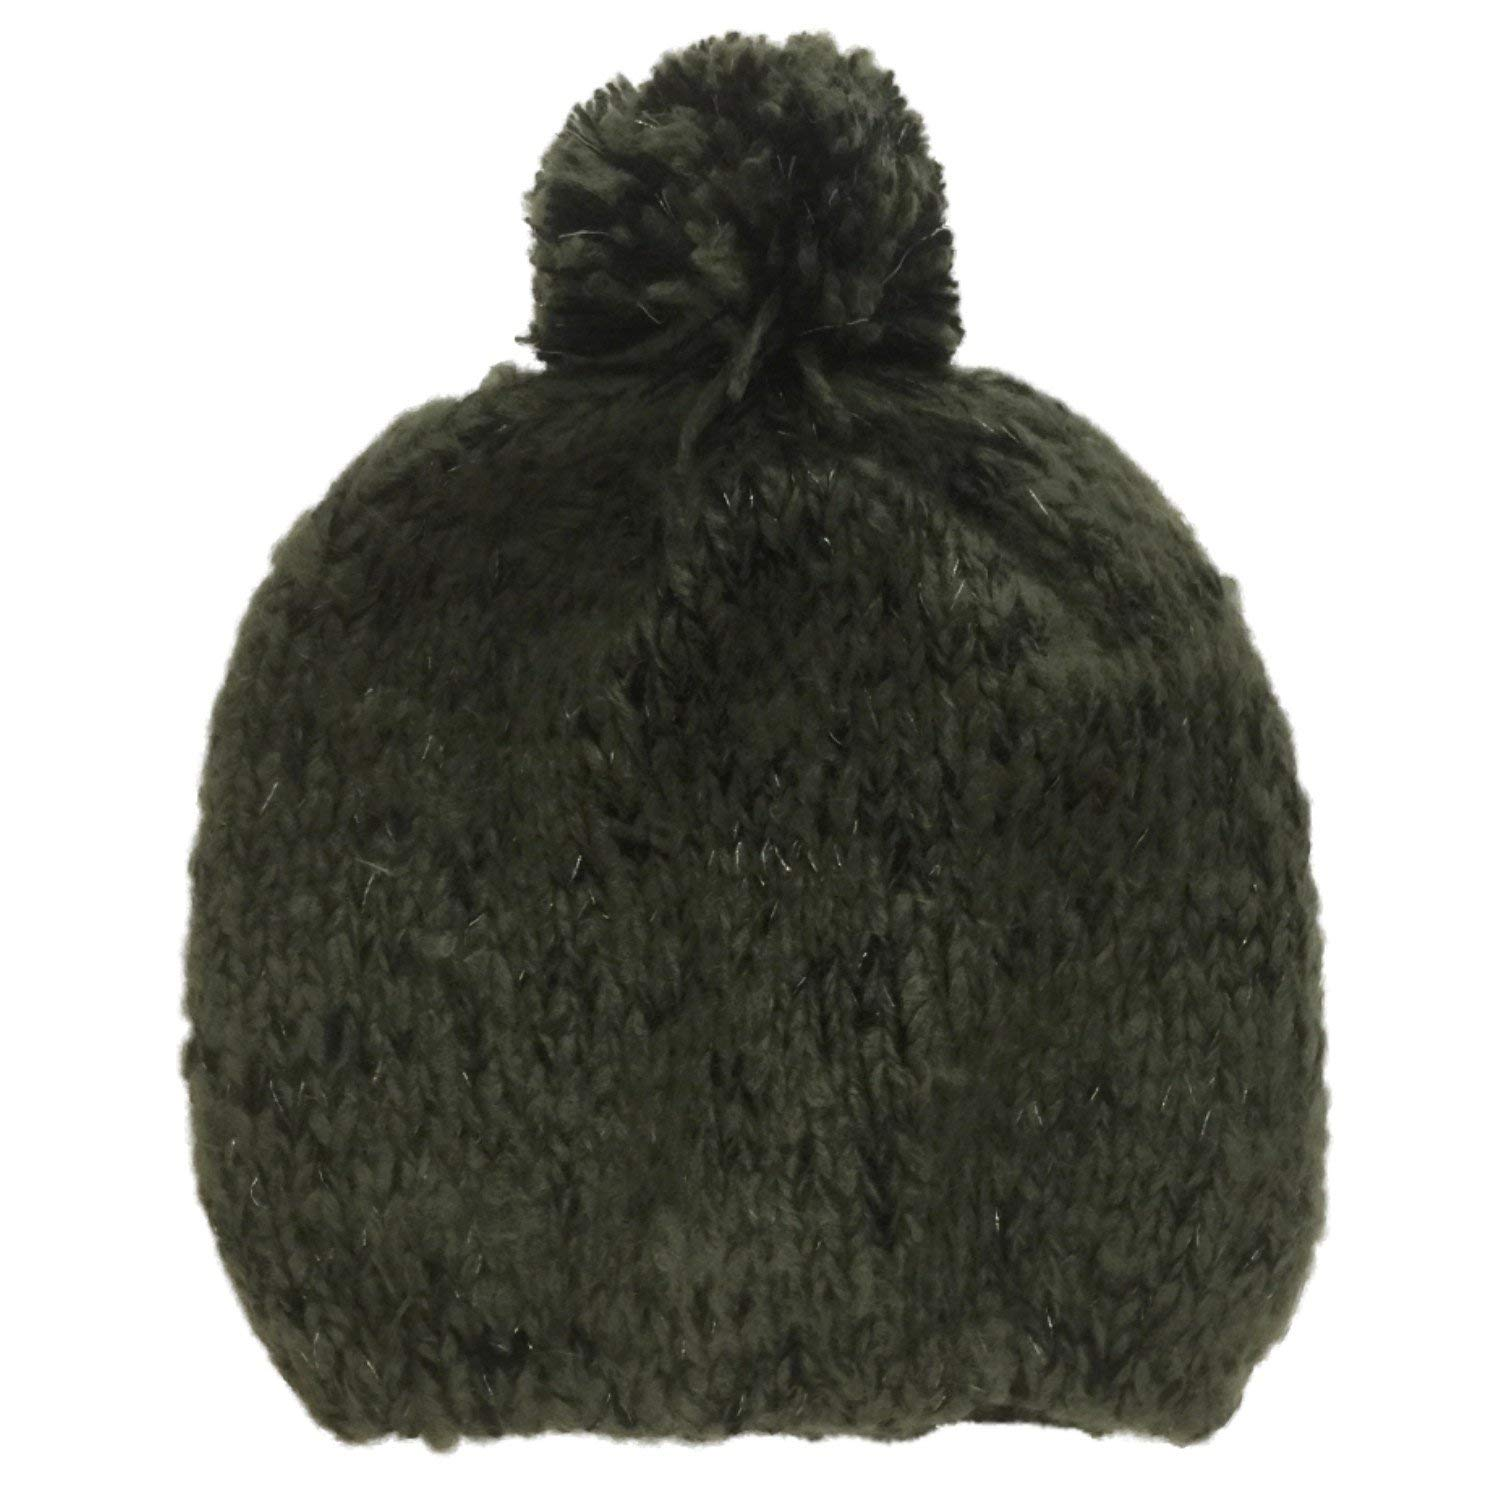 ea21e179535 Get Quotations · Sonoma Womens Green And Black Knit Beanie Stocking Cap Hat